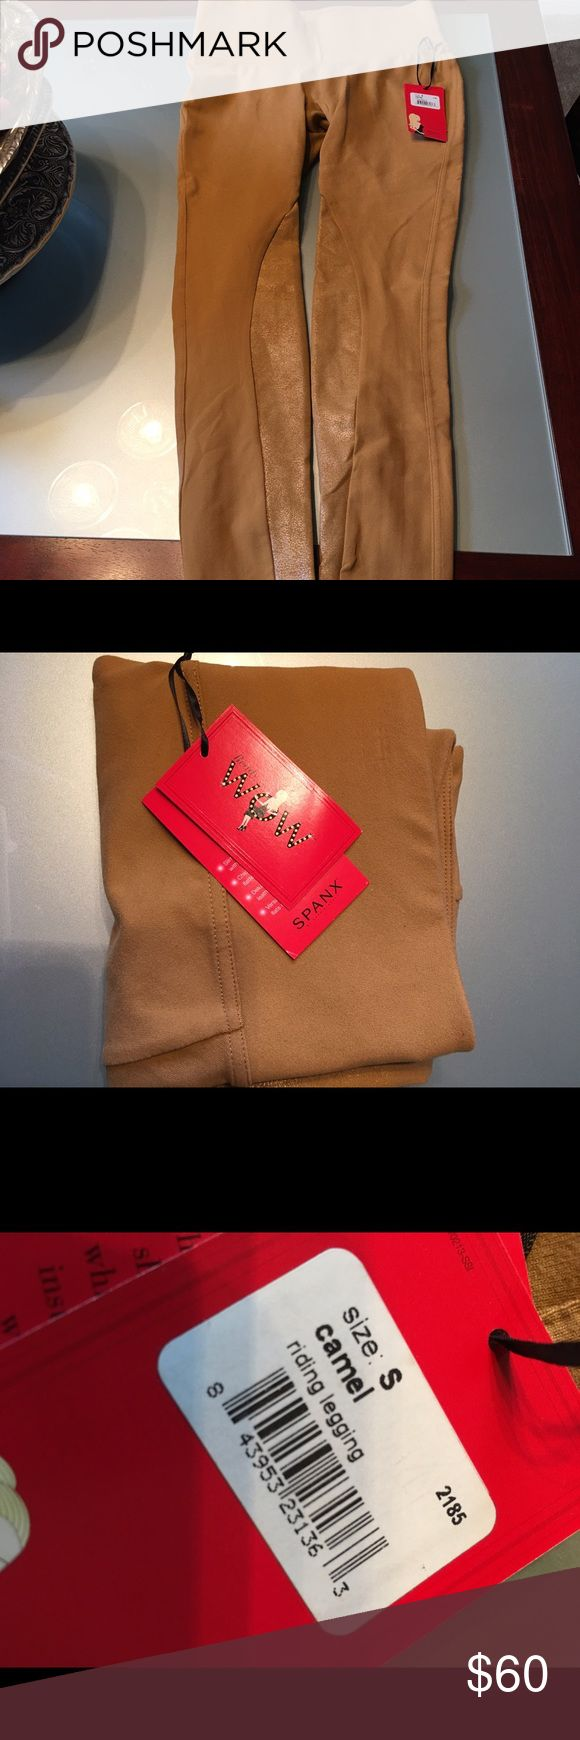 Spanx leggings High compression leggings. Brand new with tags. Size small. Camel color. SPANX Pants Leggings